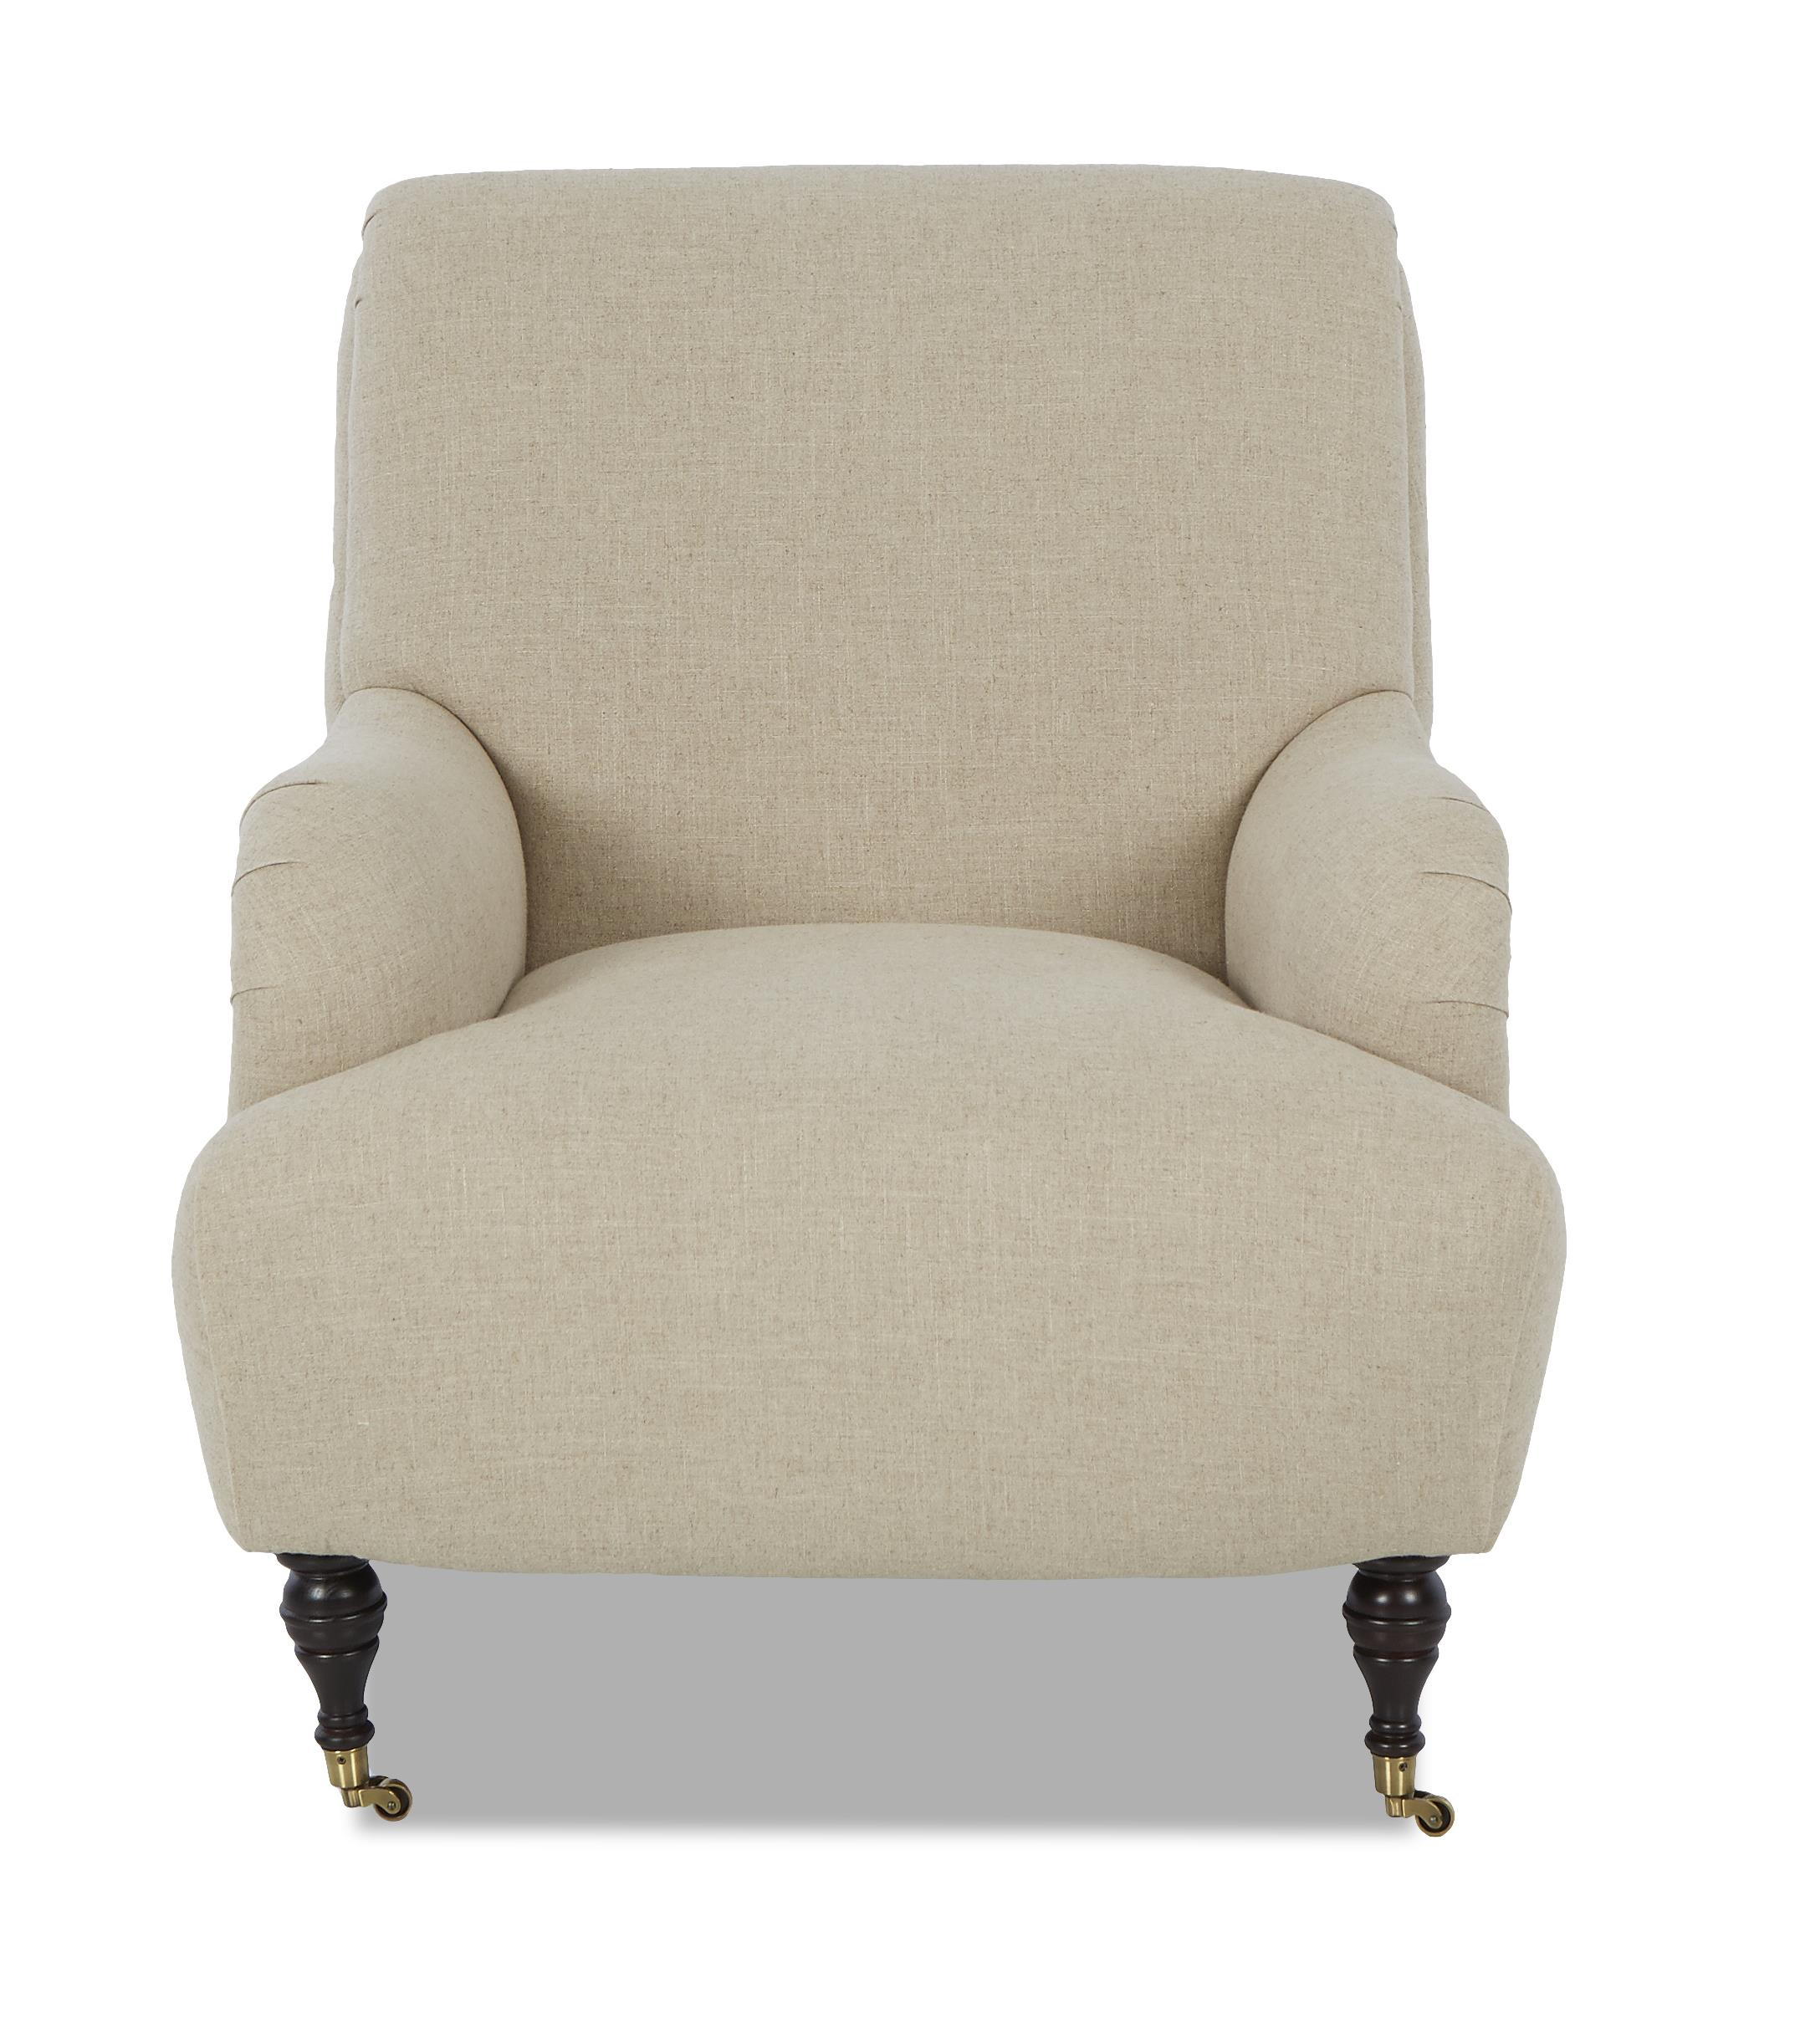 Klaussner Cameron Traditional Accent Chair - Item Number: K4000 OC-StudioNatural